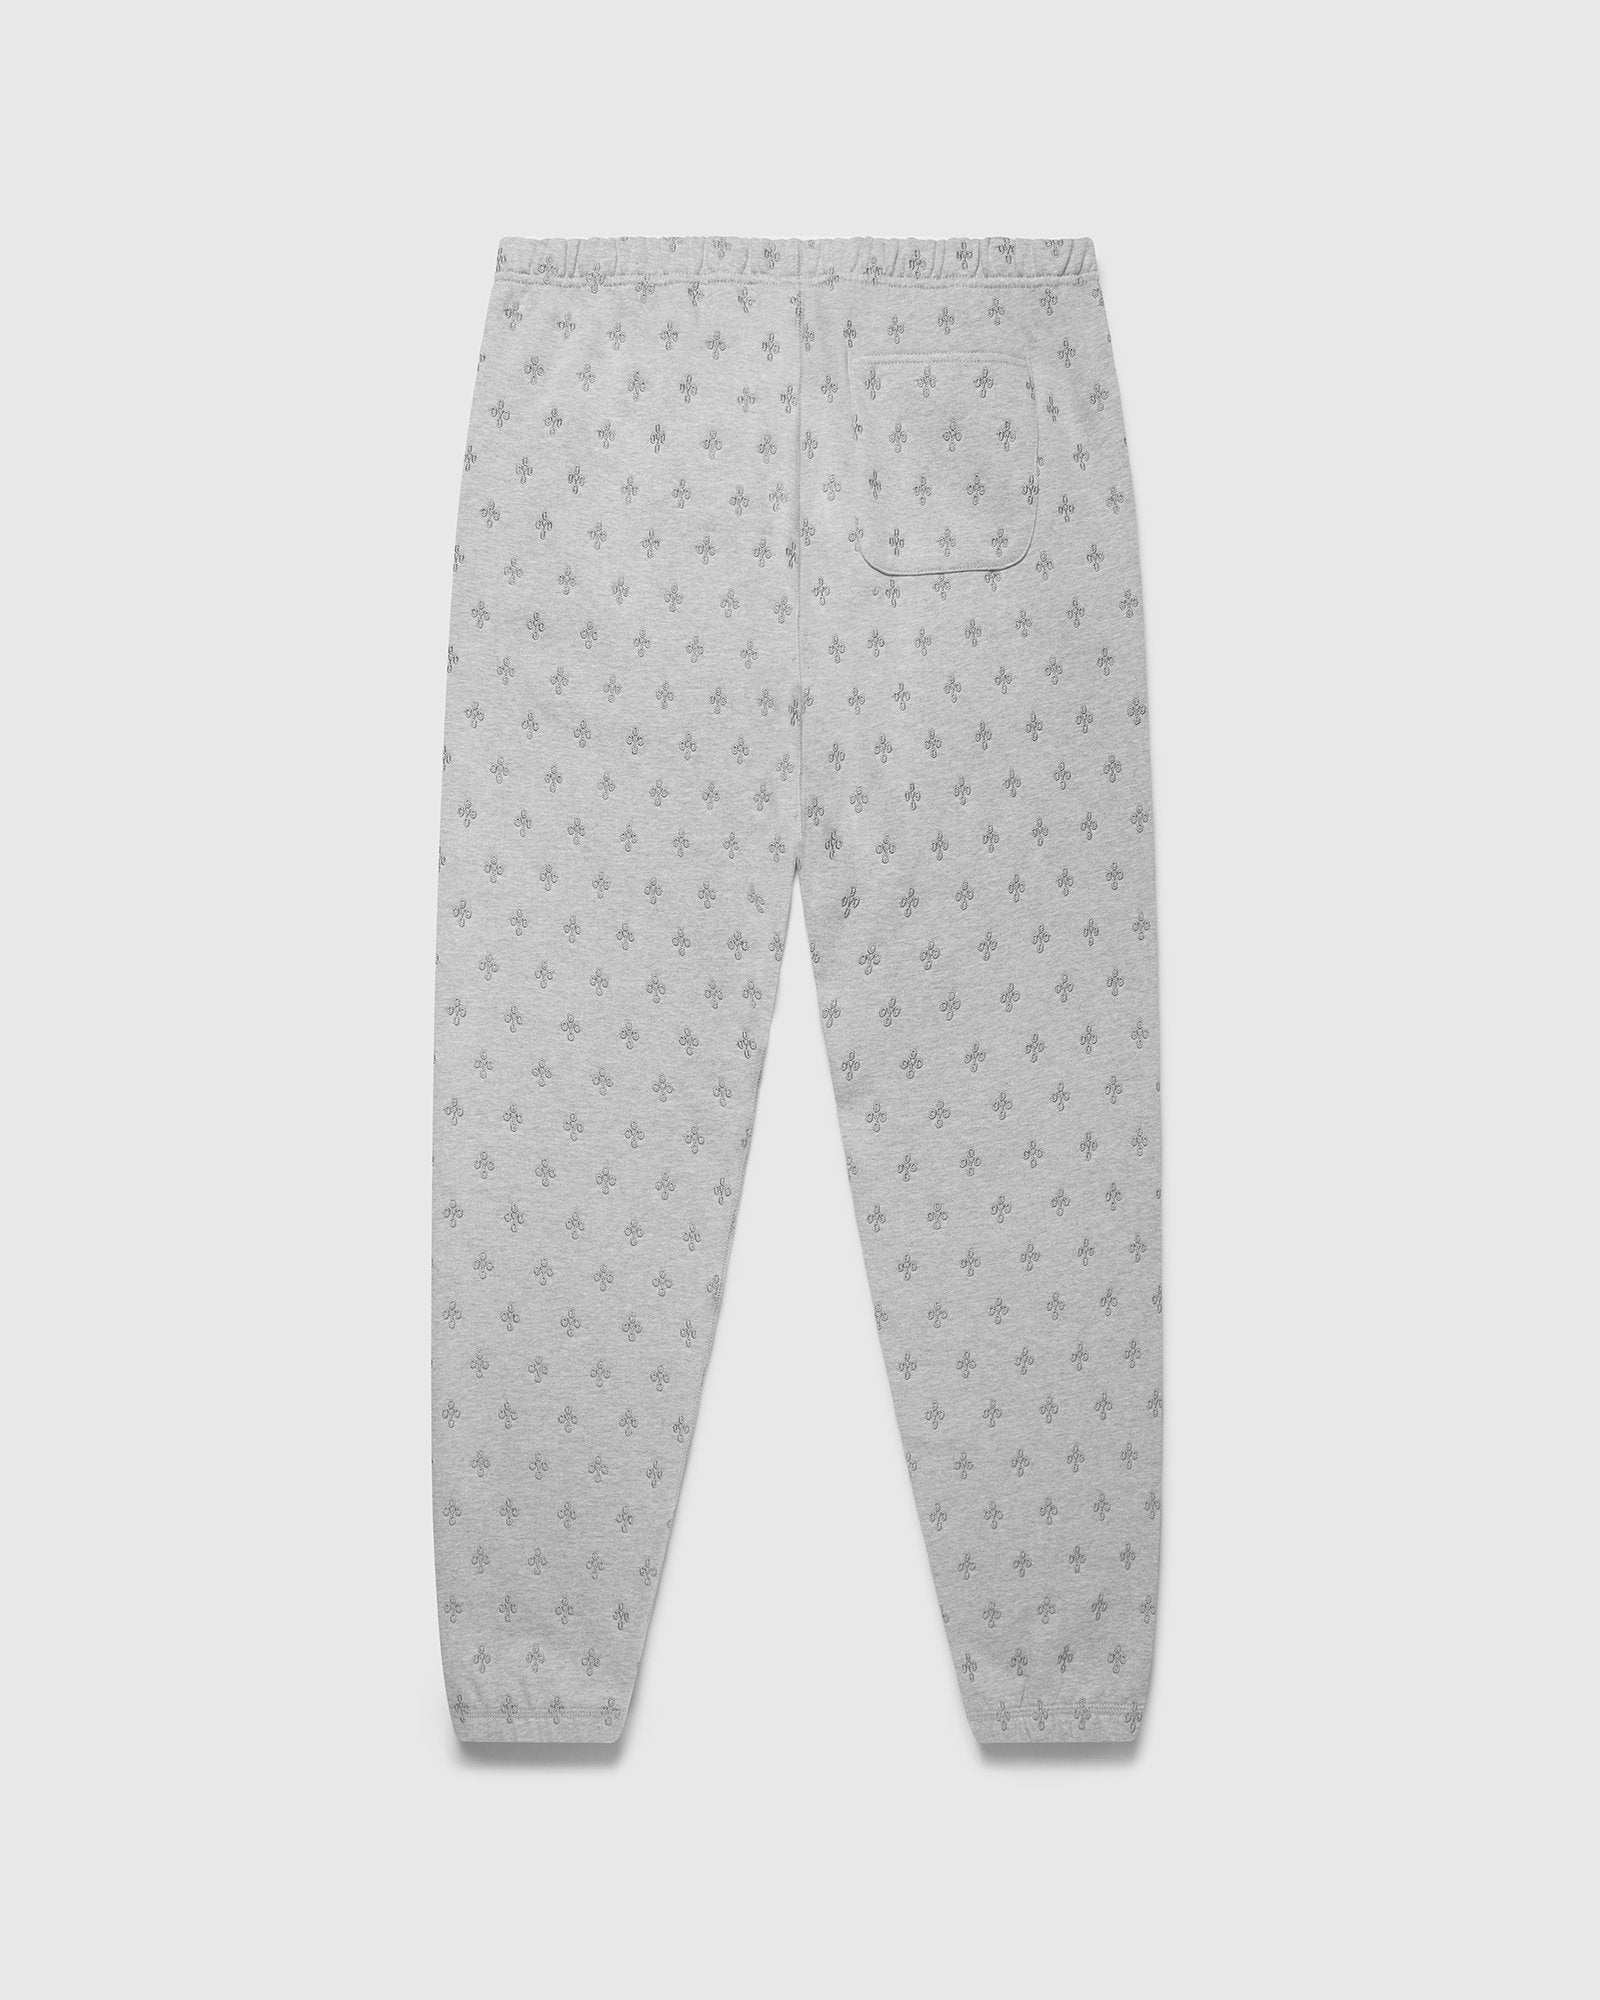 MONOGRAM SWEATPANT - HEATHER GREY IMAGE #2